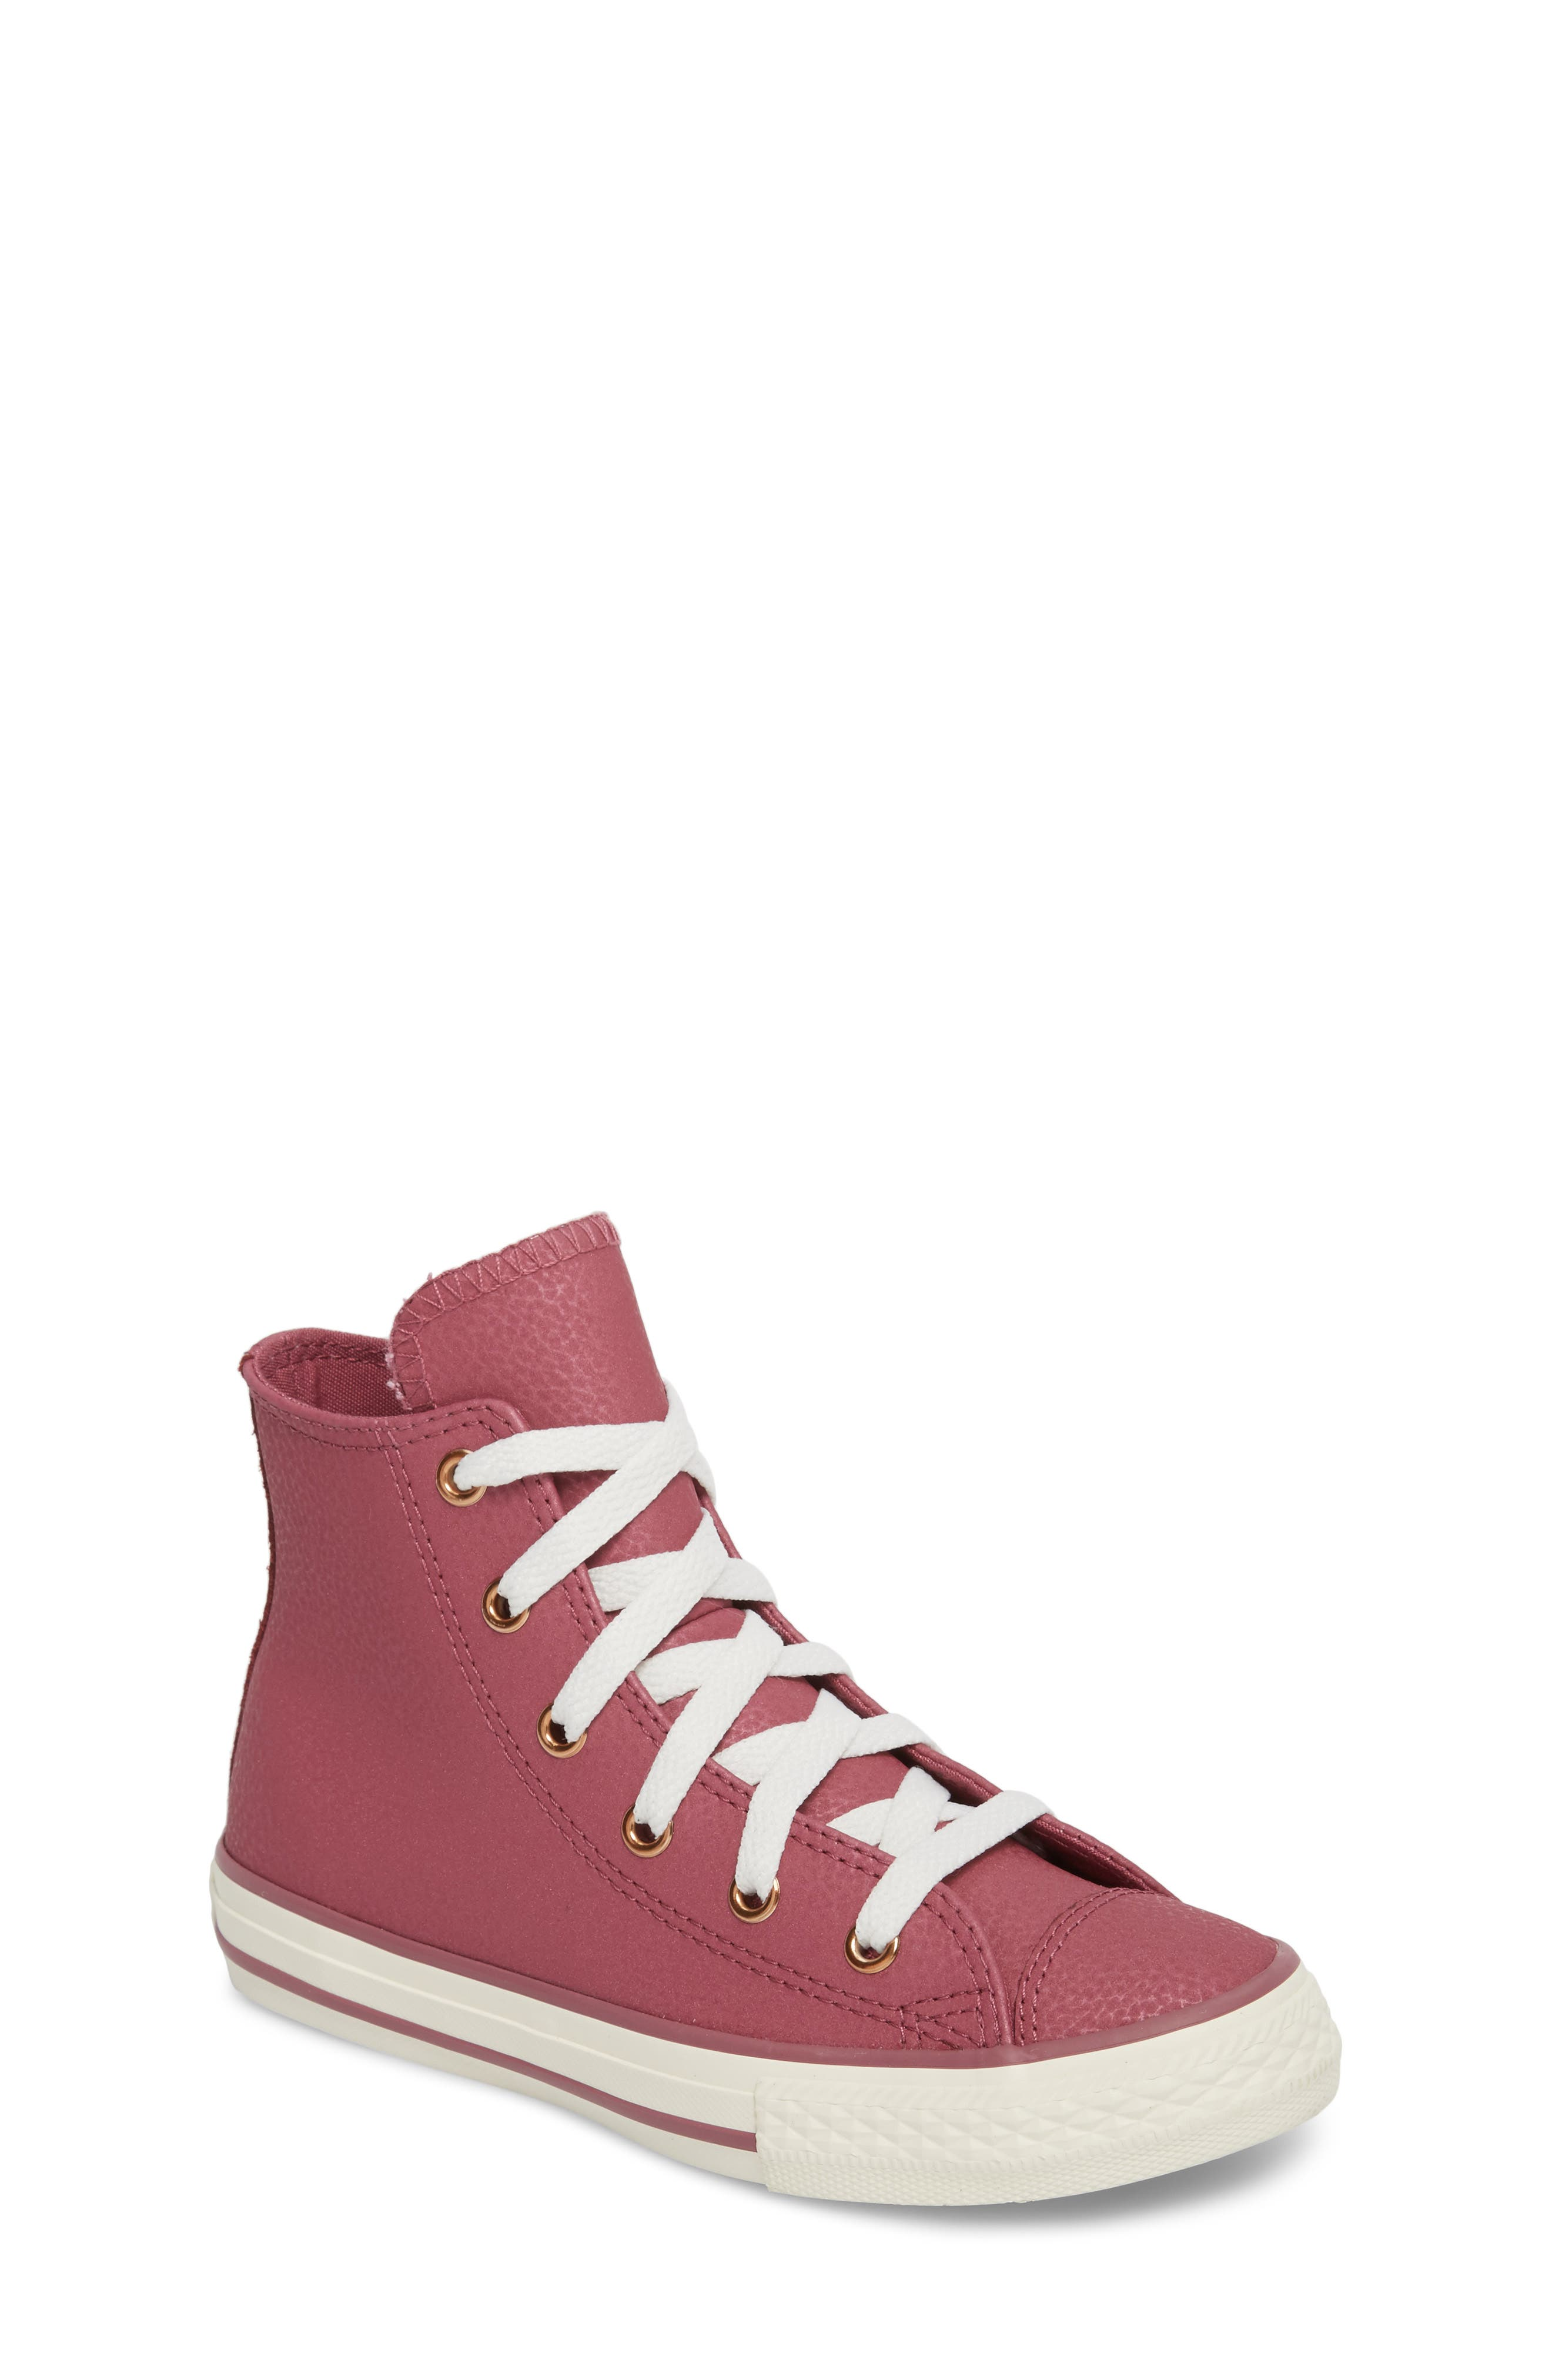 Chuck Taylor<sup>®</sup> All Star<sup>®</sup> High Top Sneaker,                             Main thumbnail 1, color,                             600